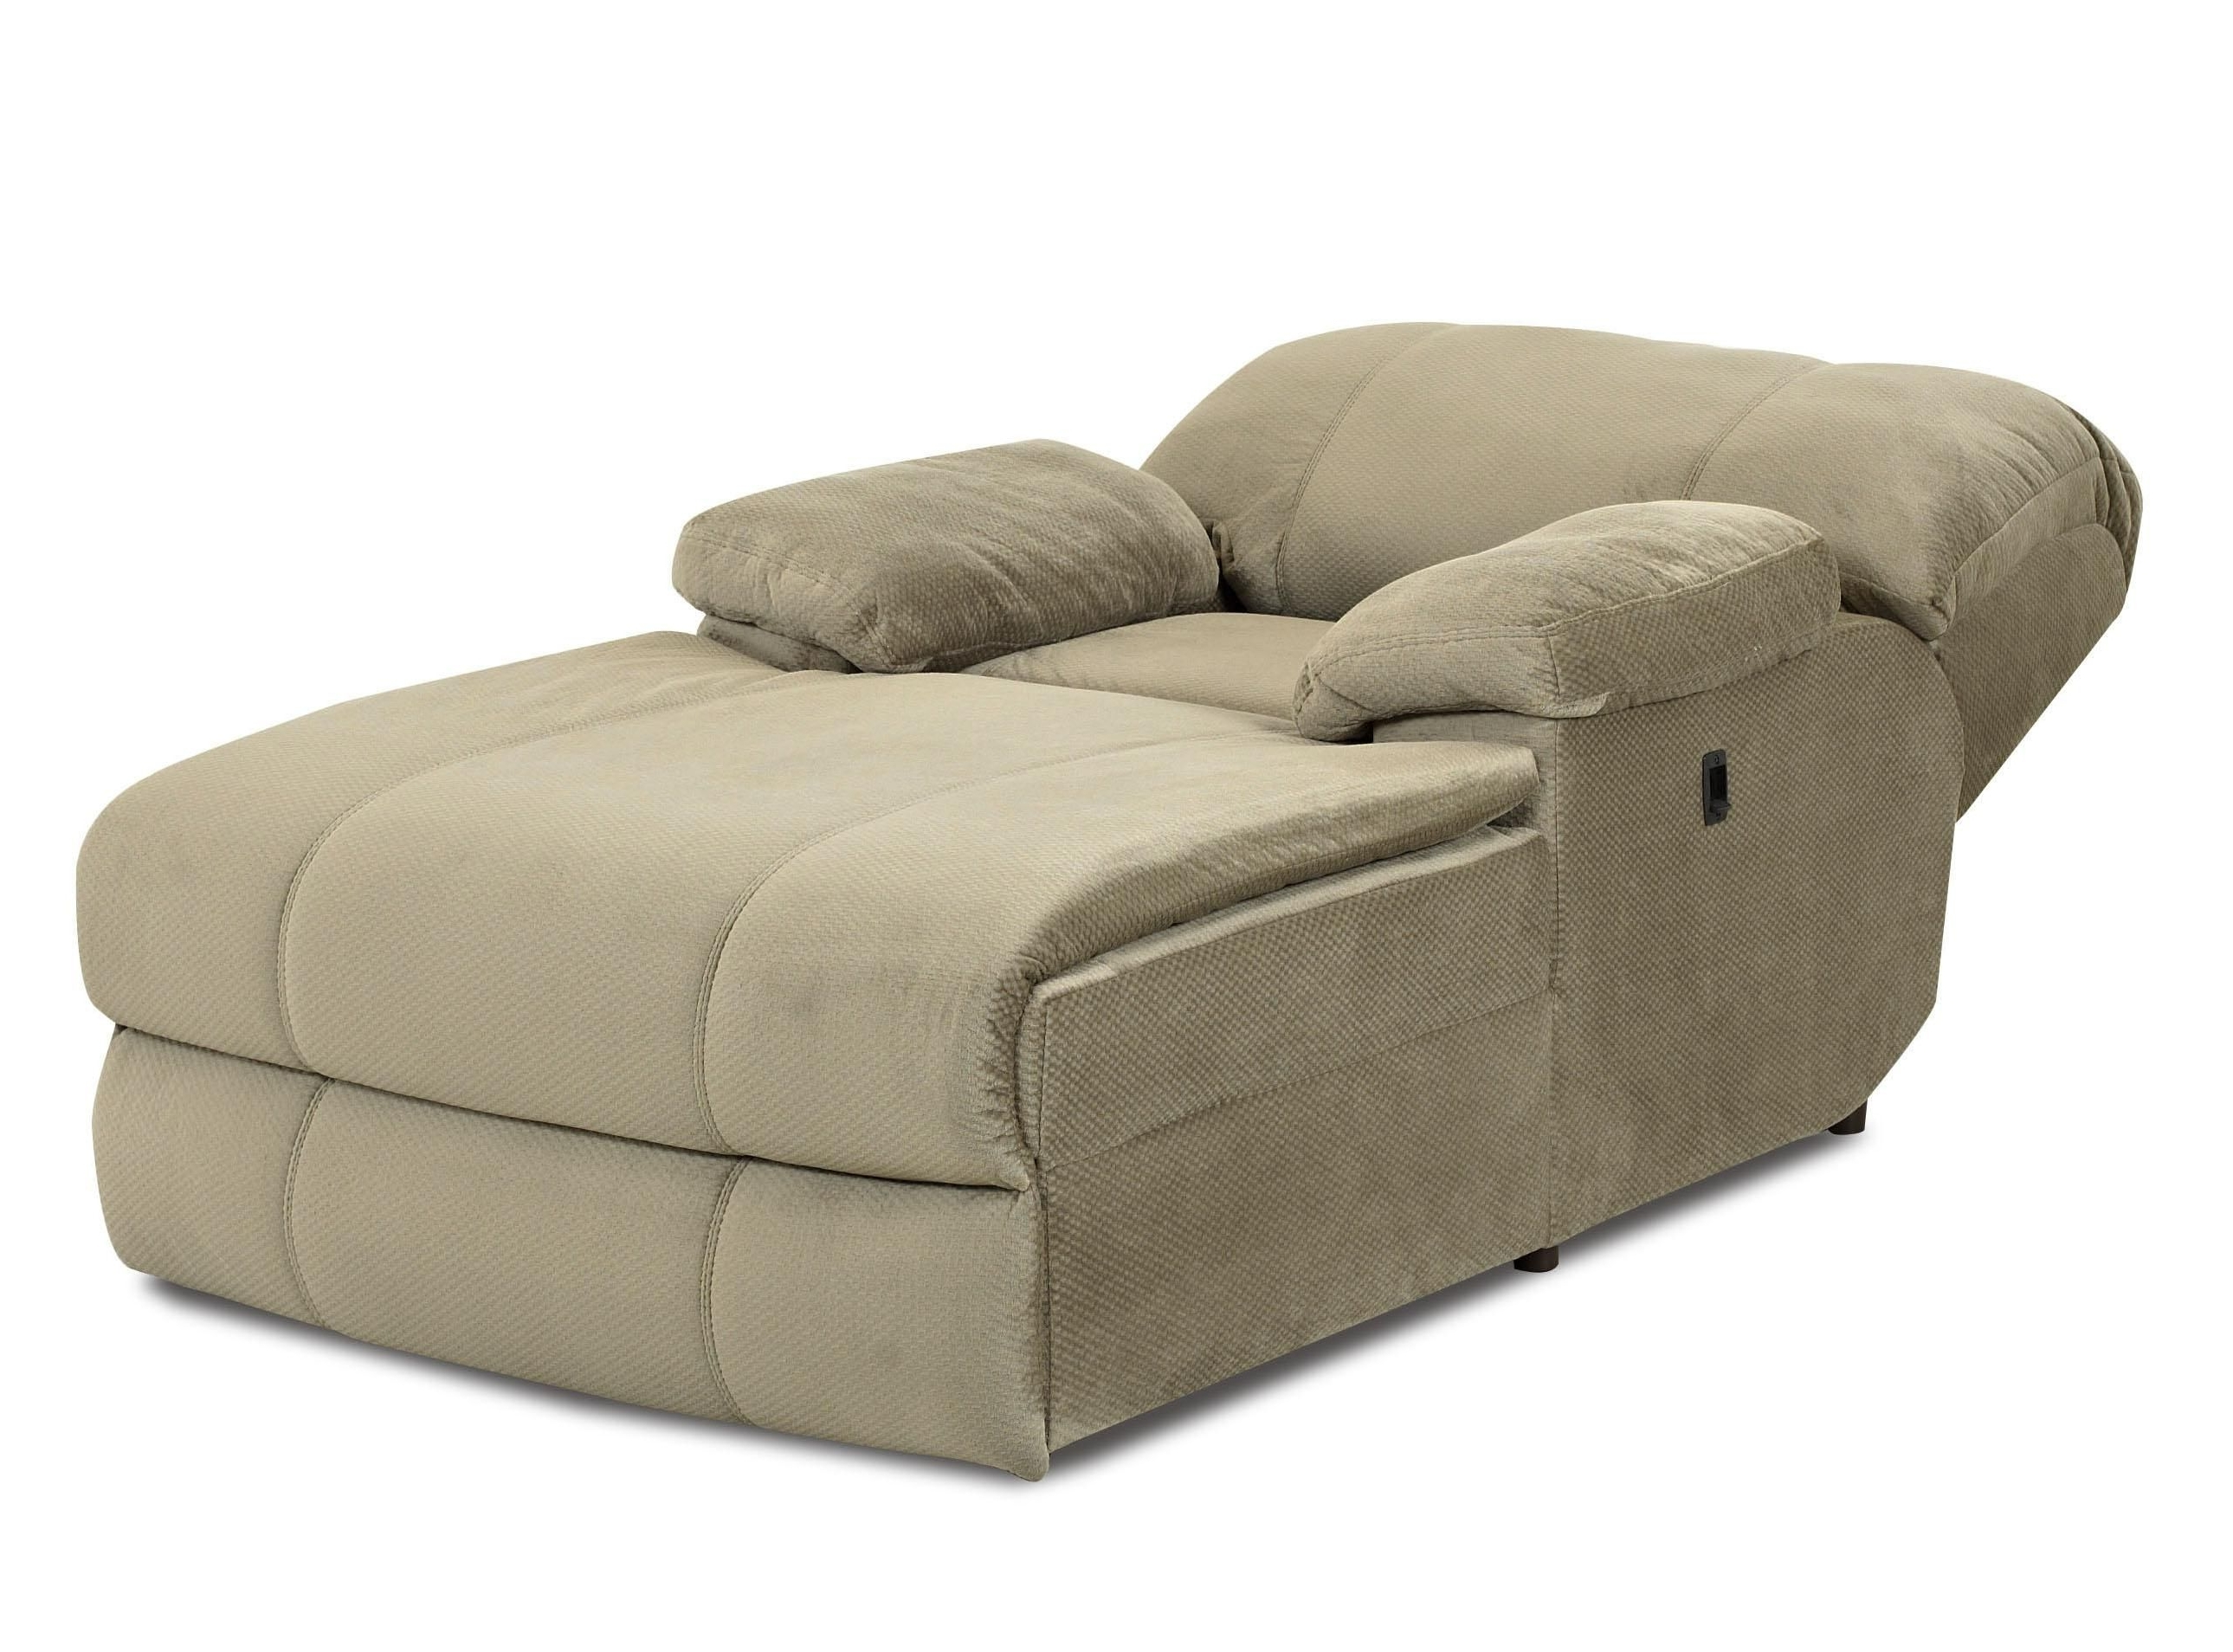 Kensington Reclining Chaise (View 11 of 15)